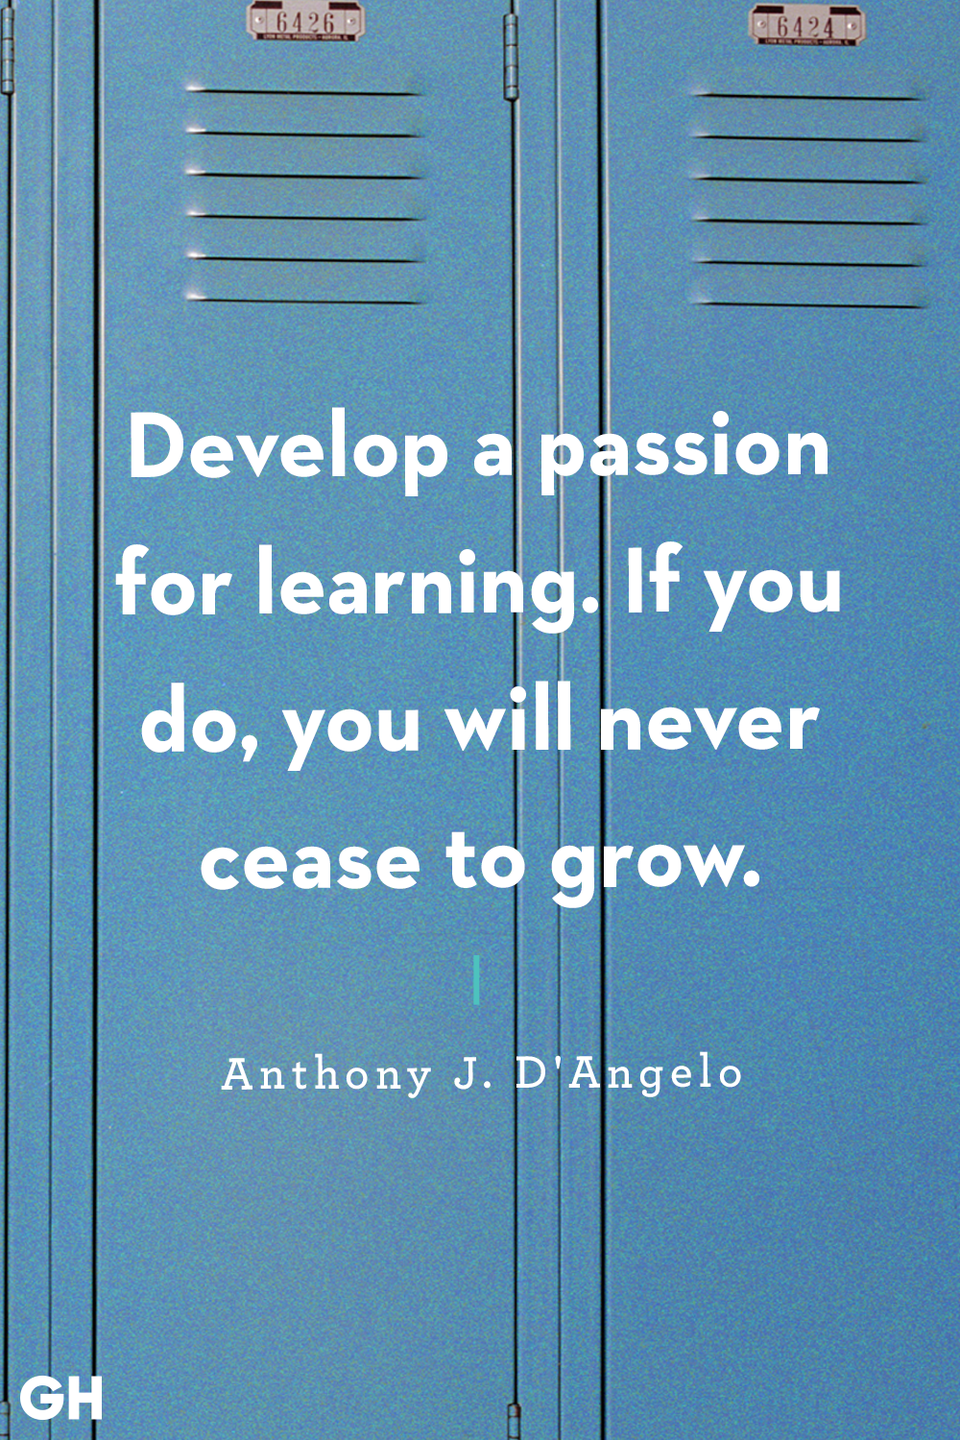 <p>Develop a passion for learning. If you do, you will never cease to grow.</p>